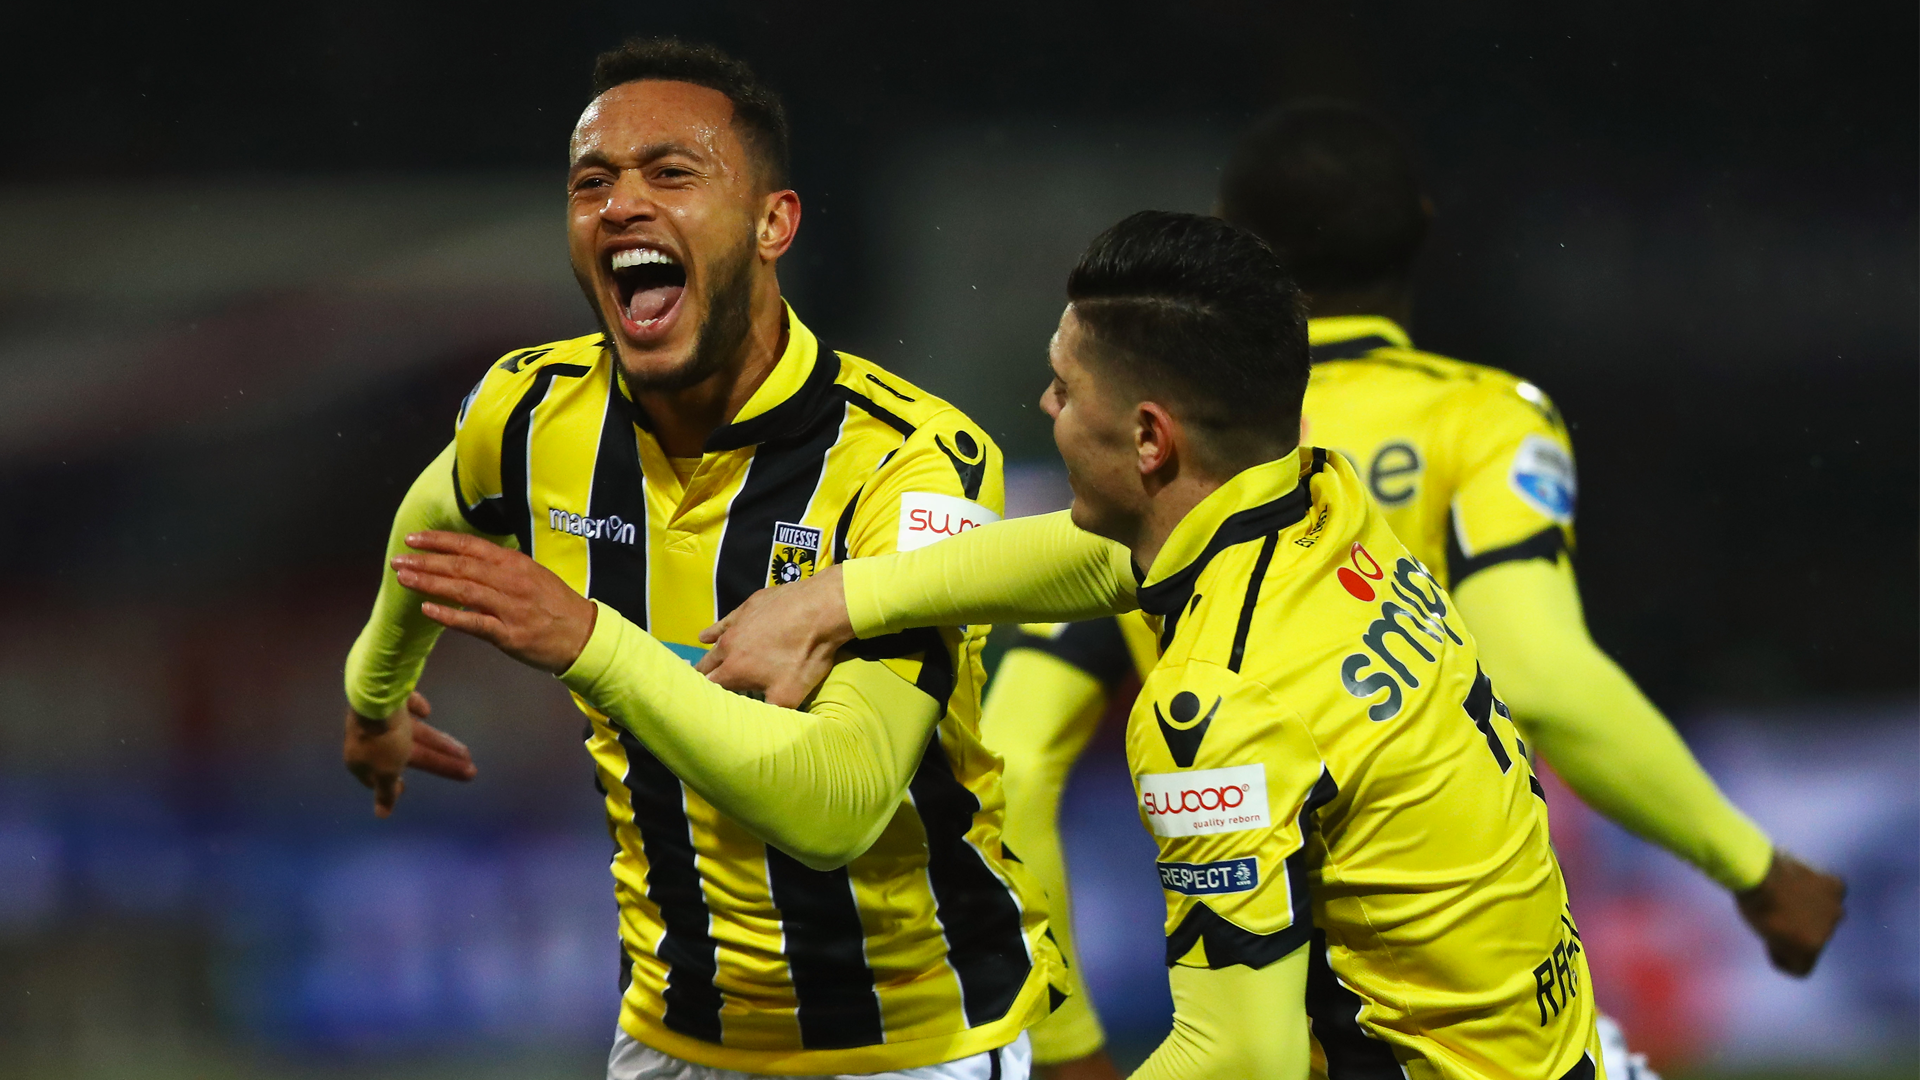 Lewis Baker: Chelsea loan midfielder to Middlesbrough for the season